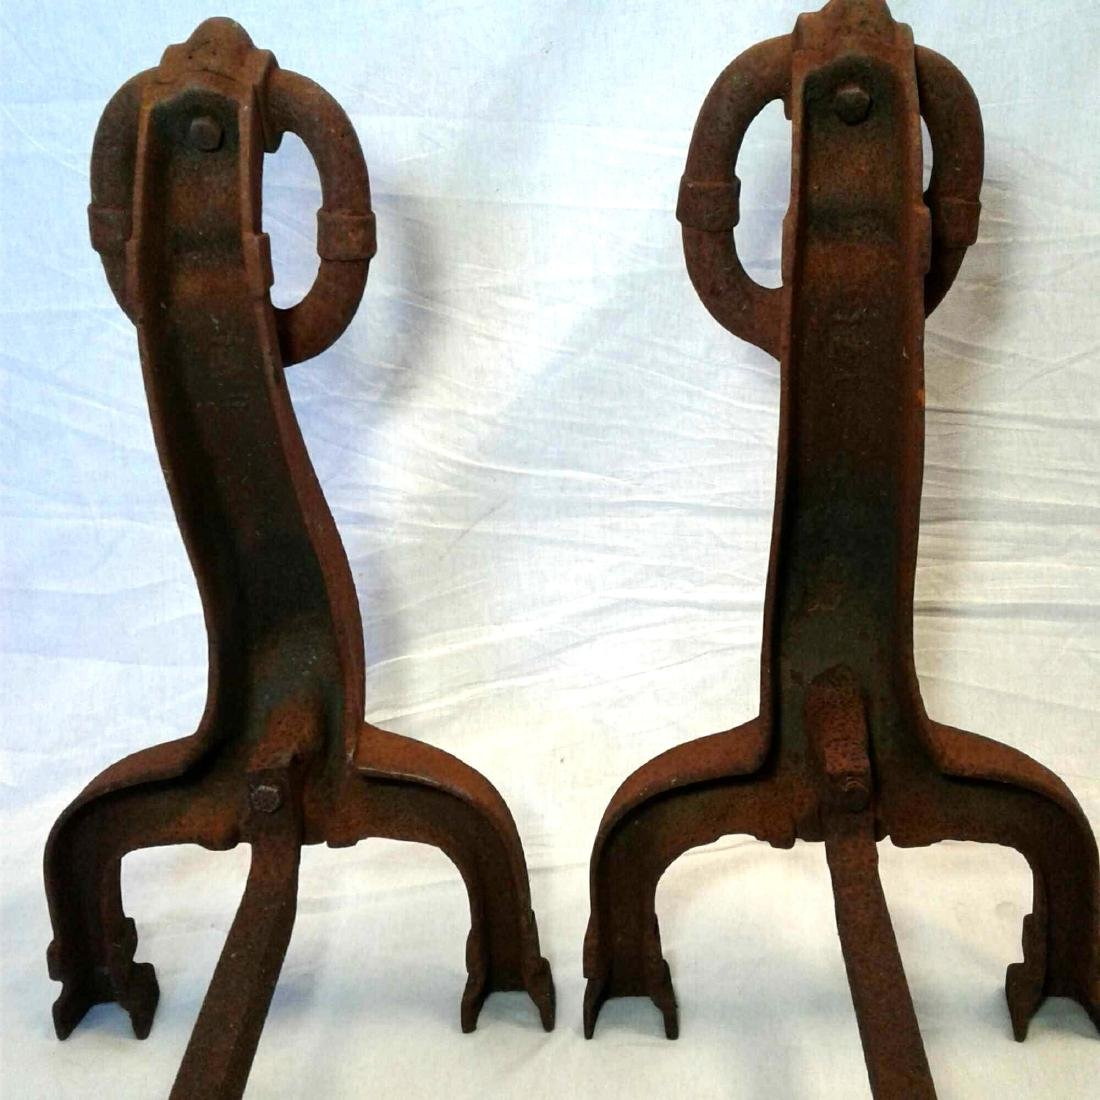 Antique Fireplace Andirons - 15